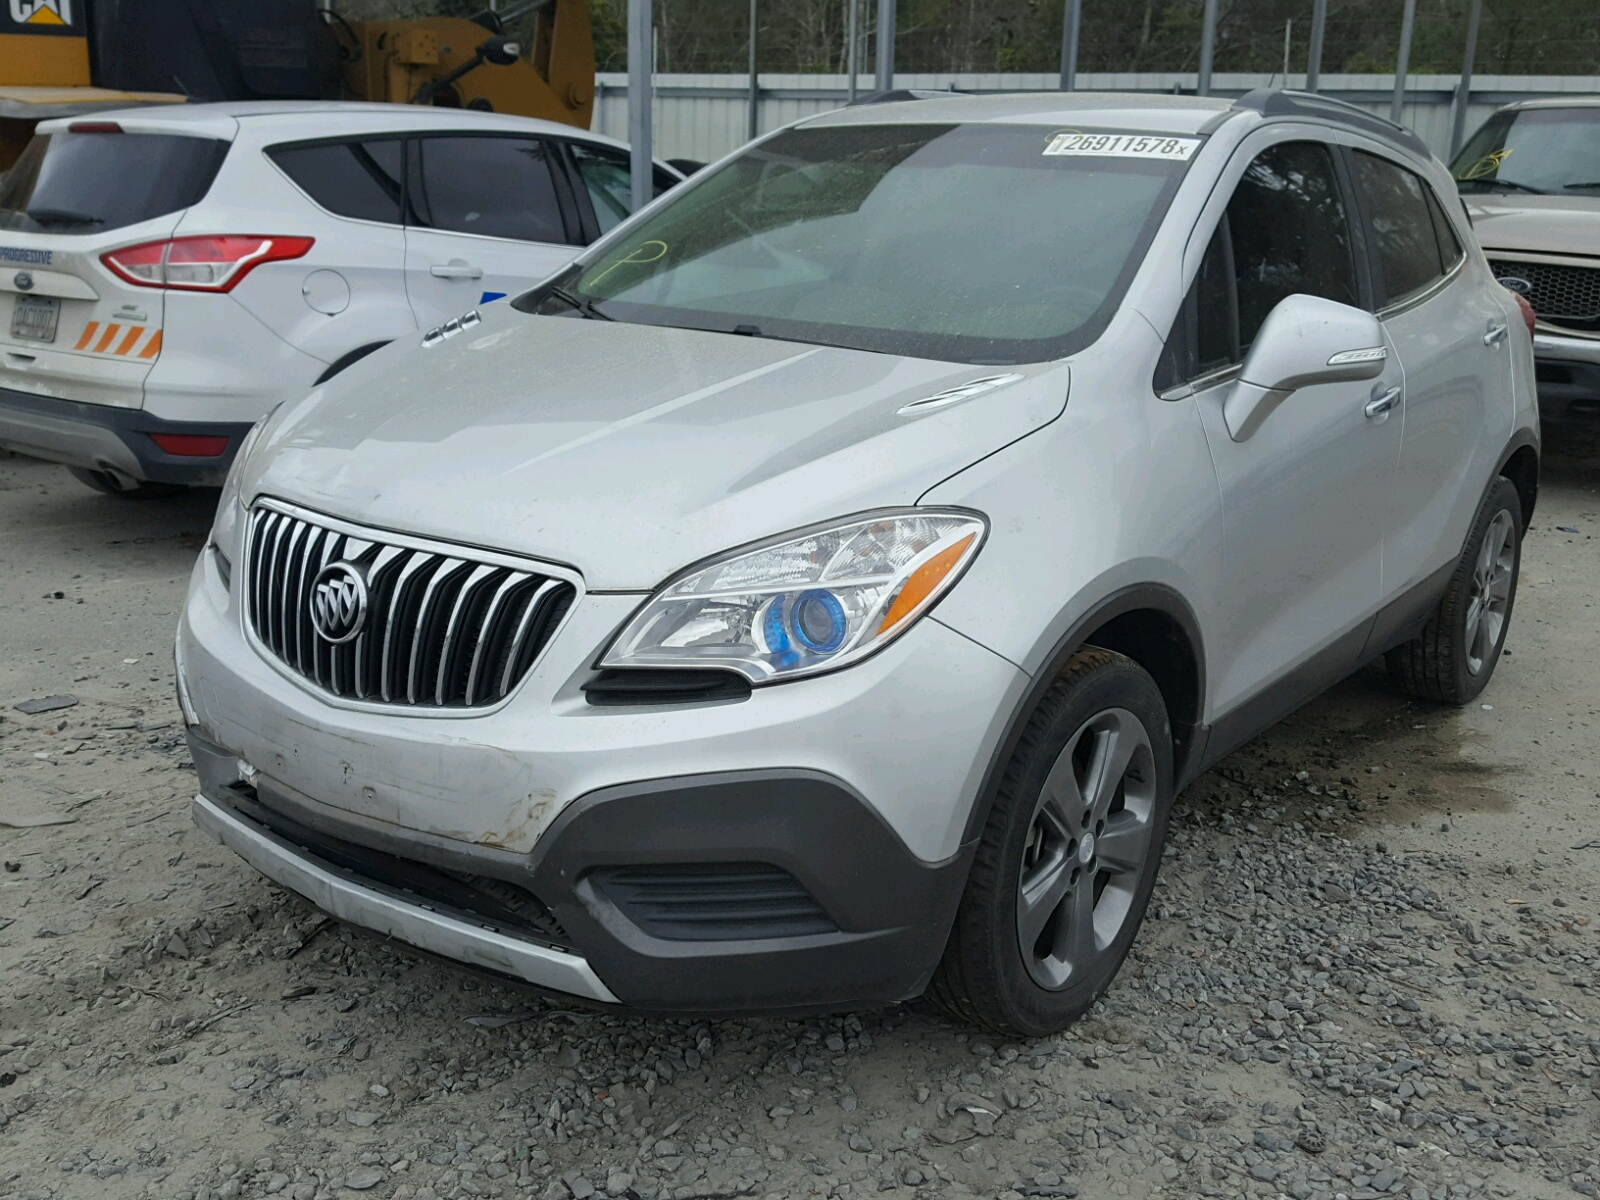 used buick grove vehiclesearchresults in vehicle cottage for vehicles encore sale or photo